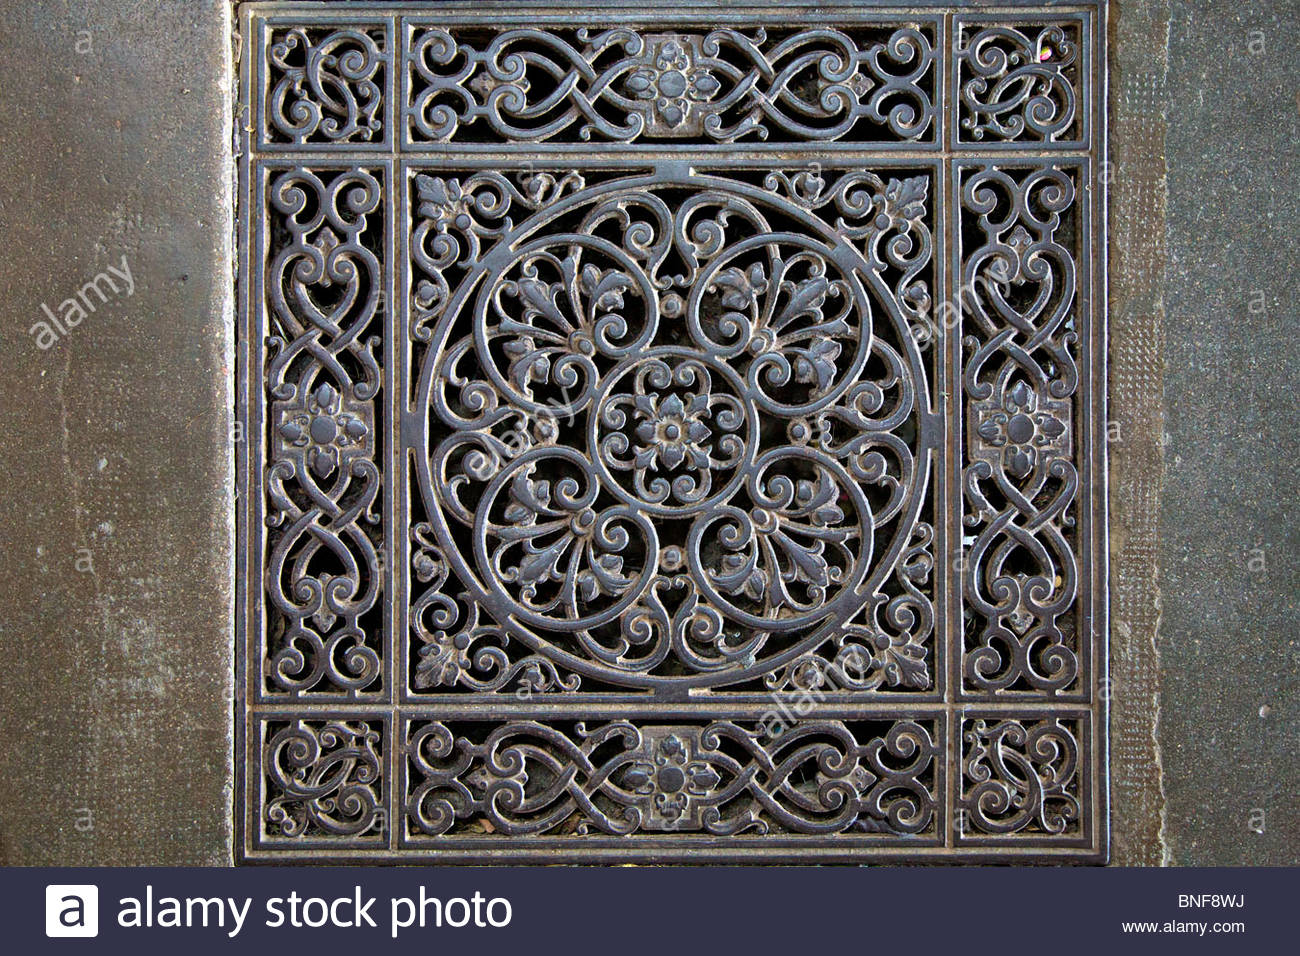 Decorative Metal Grates Decorative Metal Floor Grate On The Floor Of A Church In Central